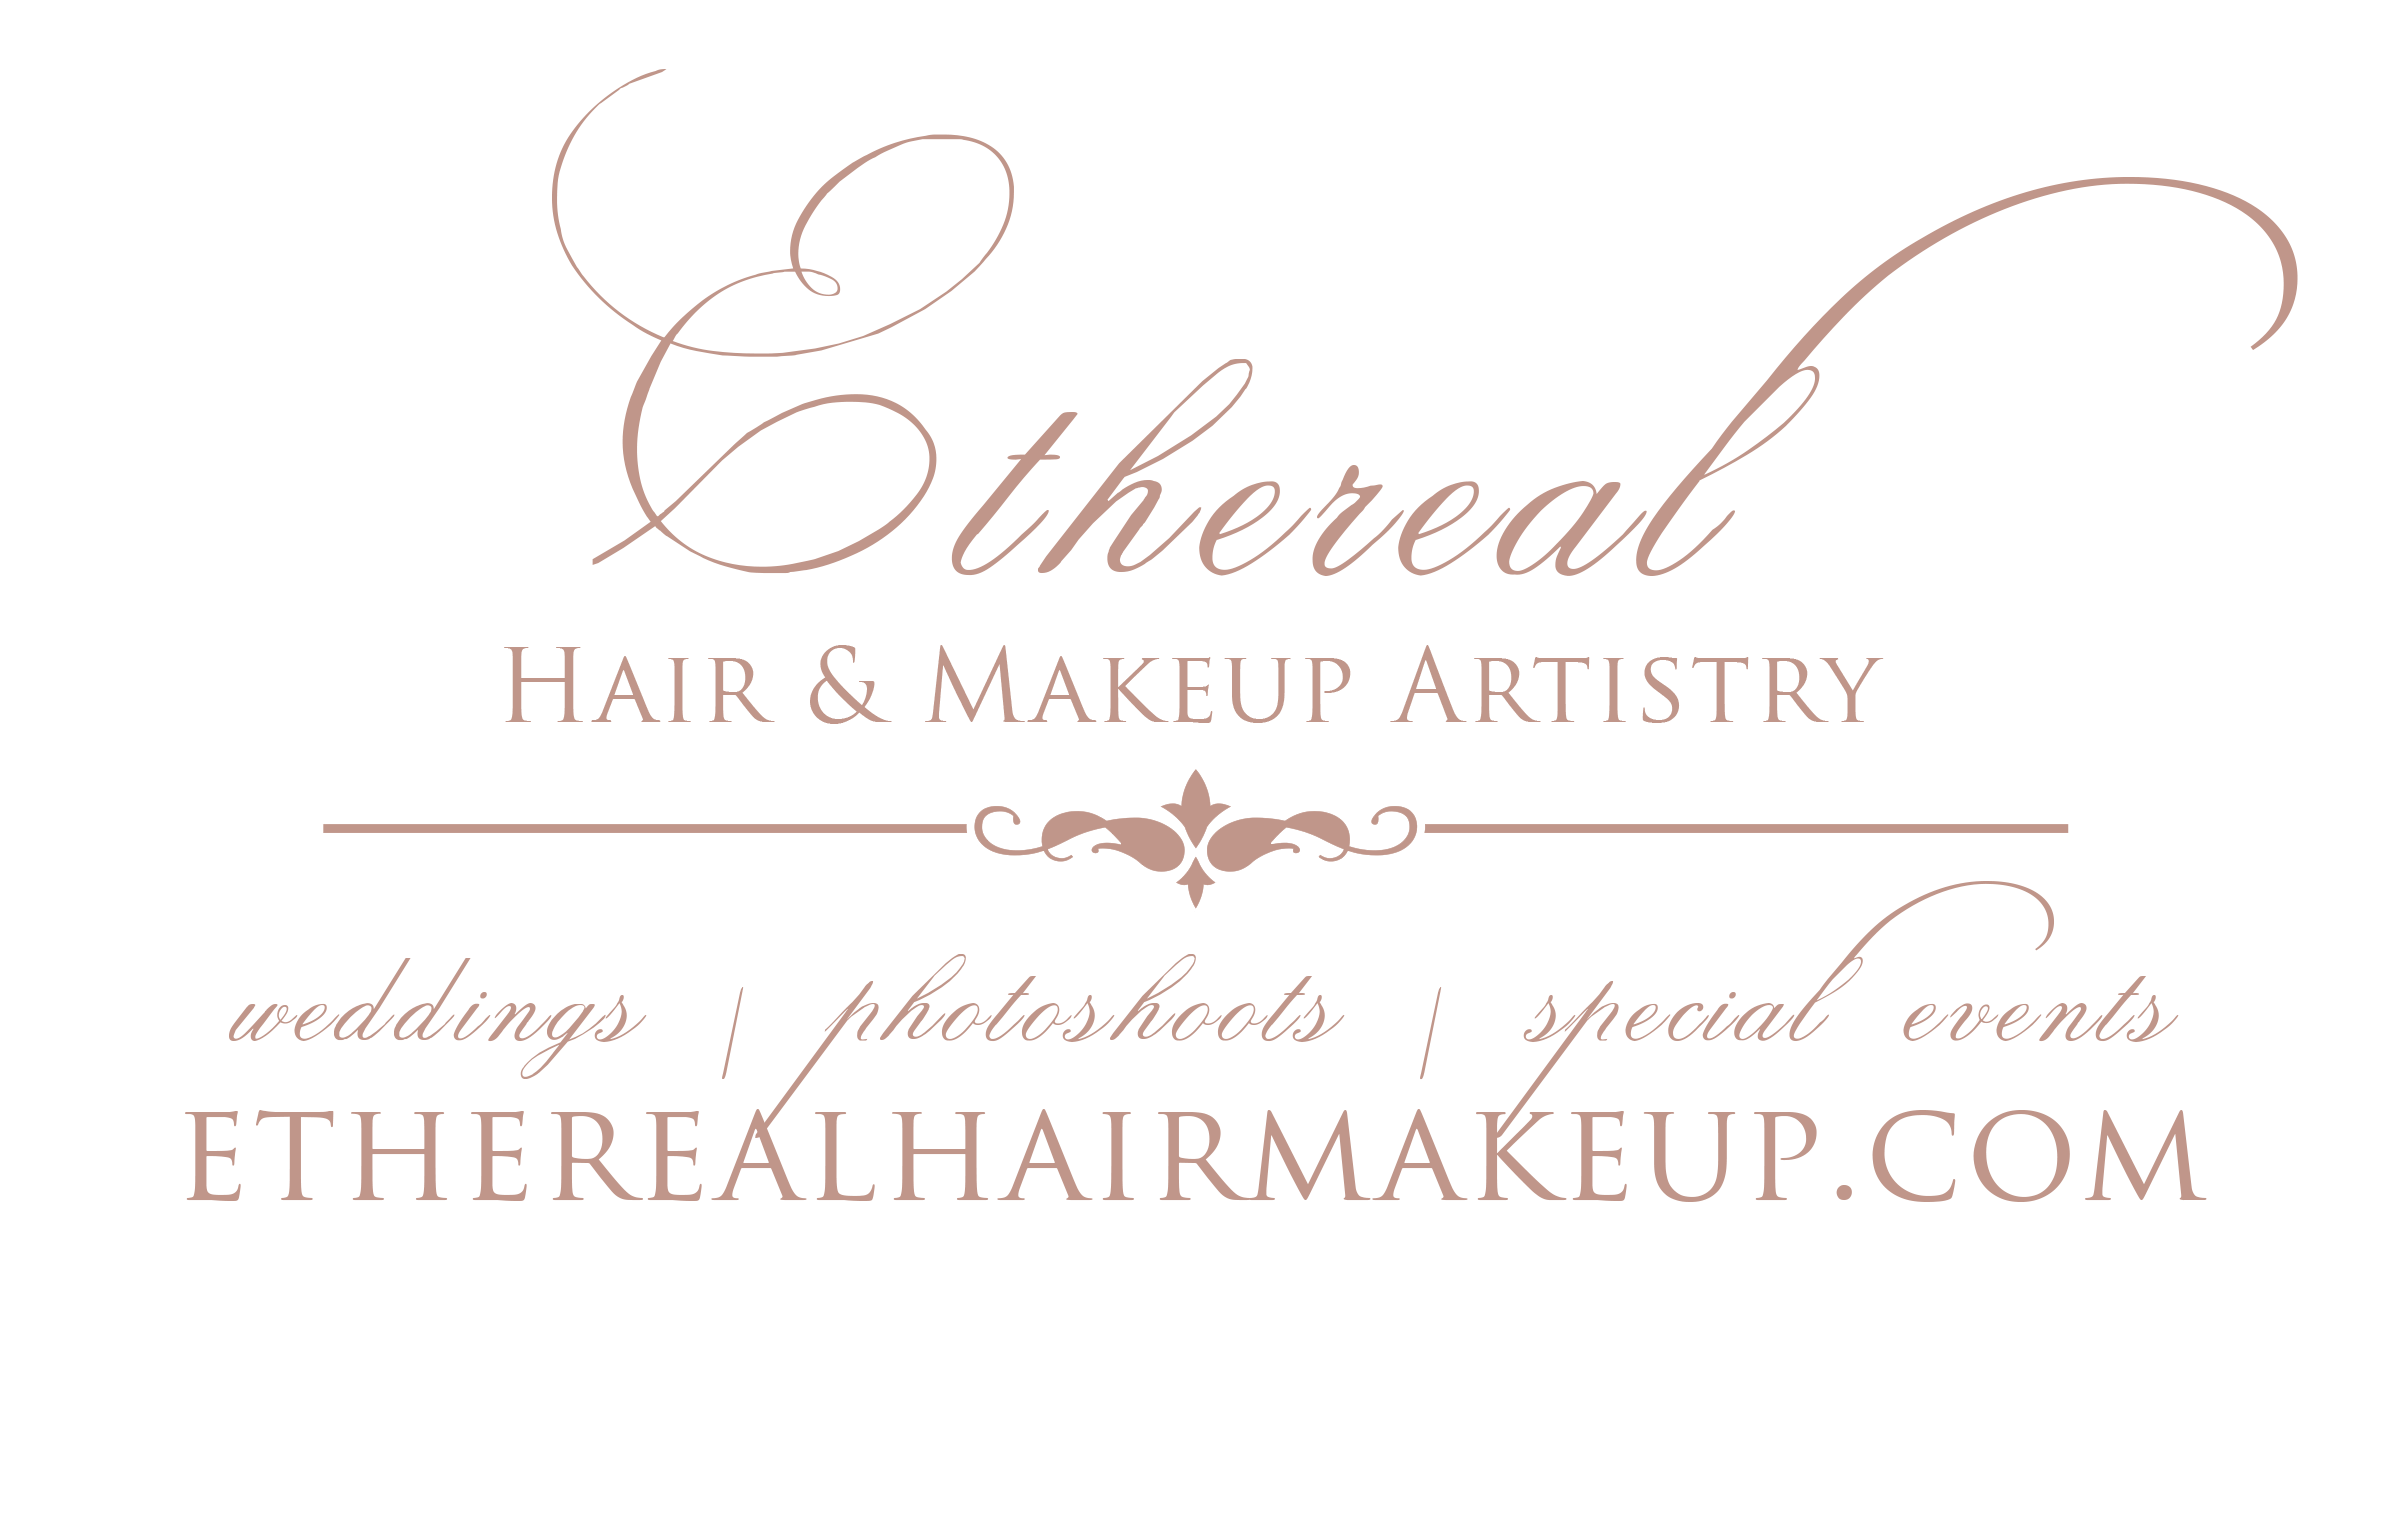 Ethereal Hair & Makeup Artistry